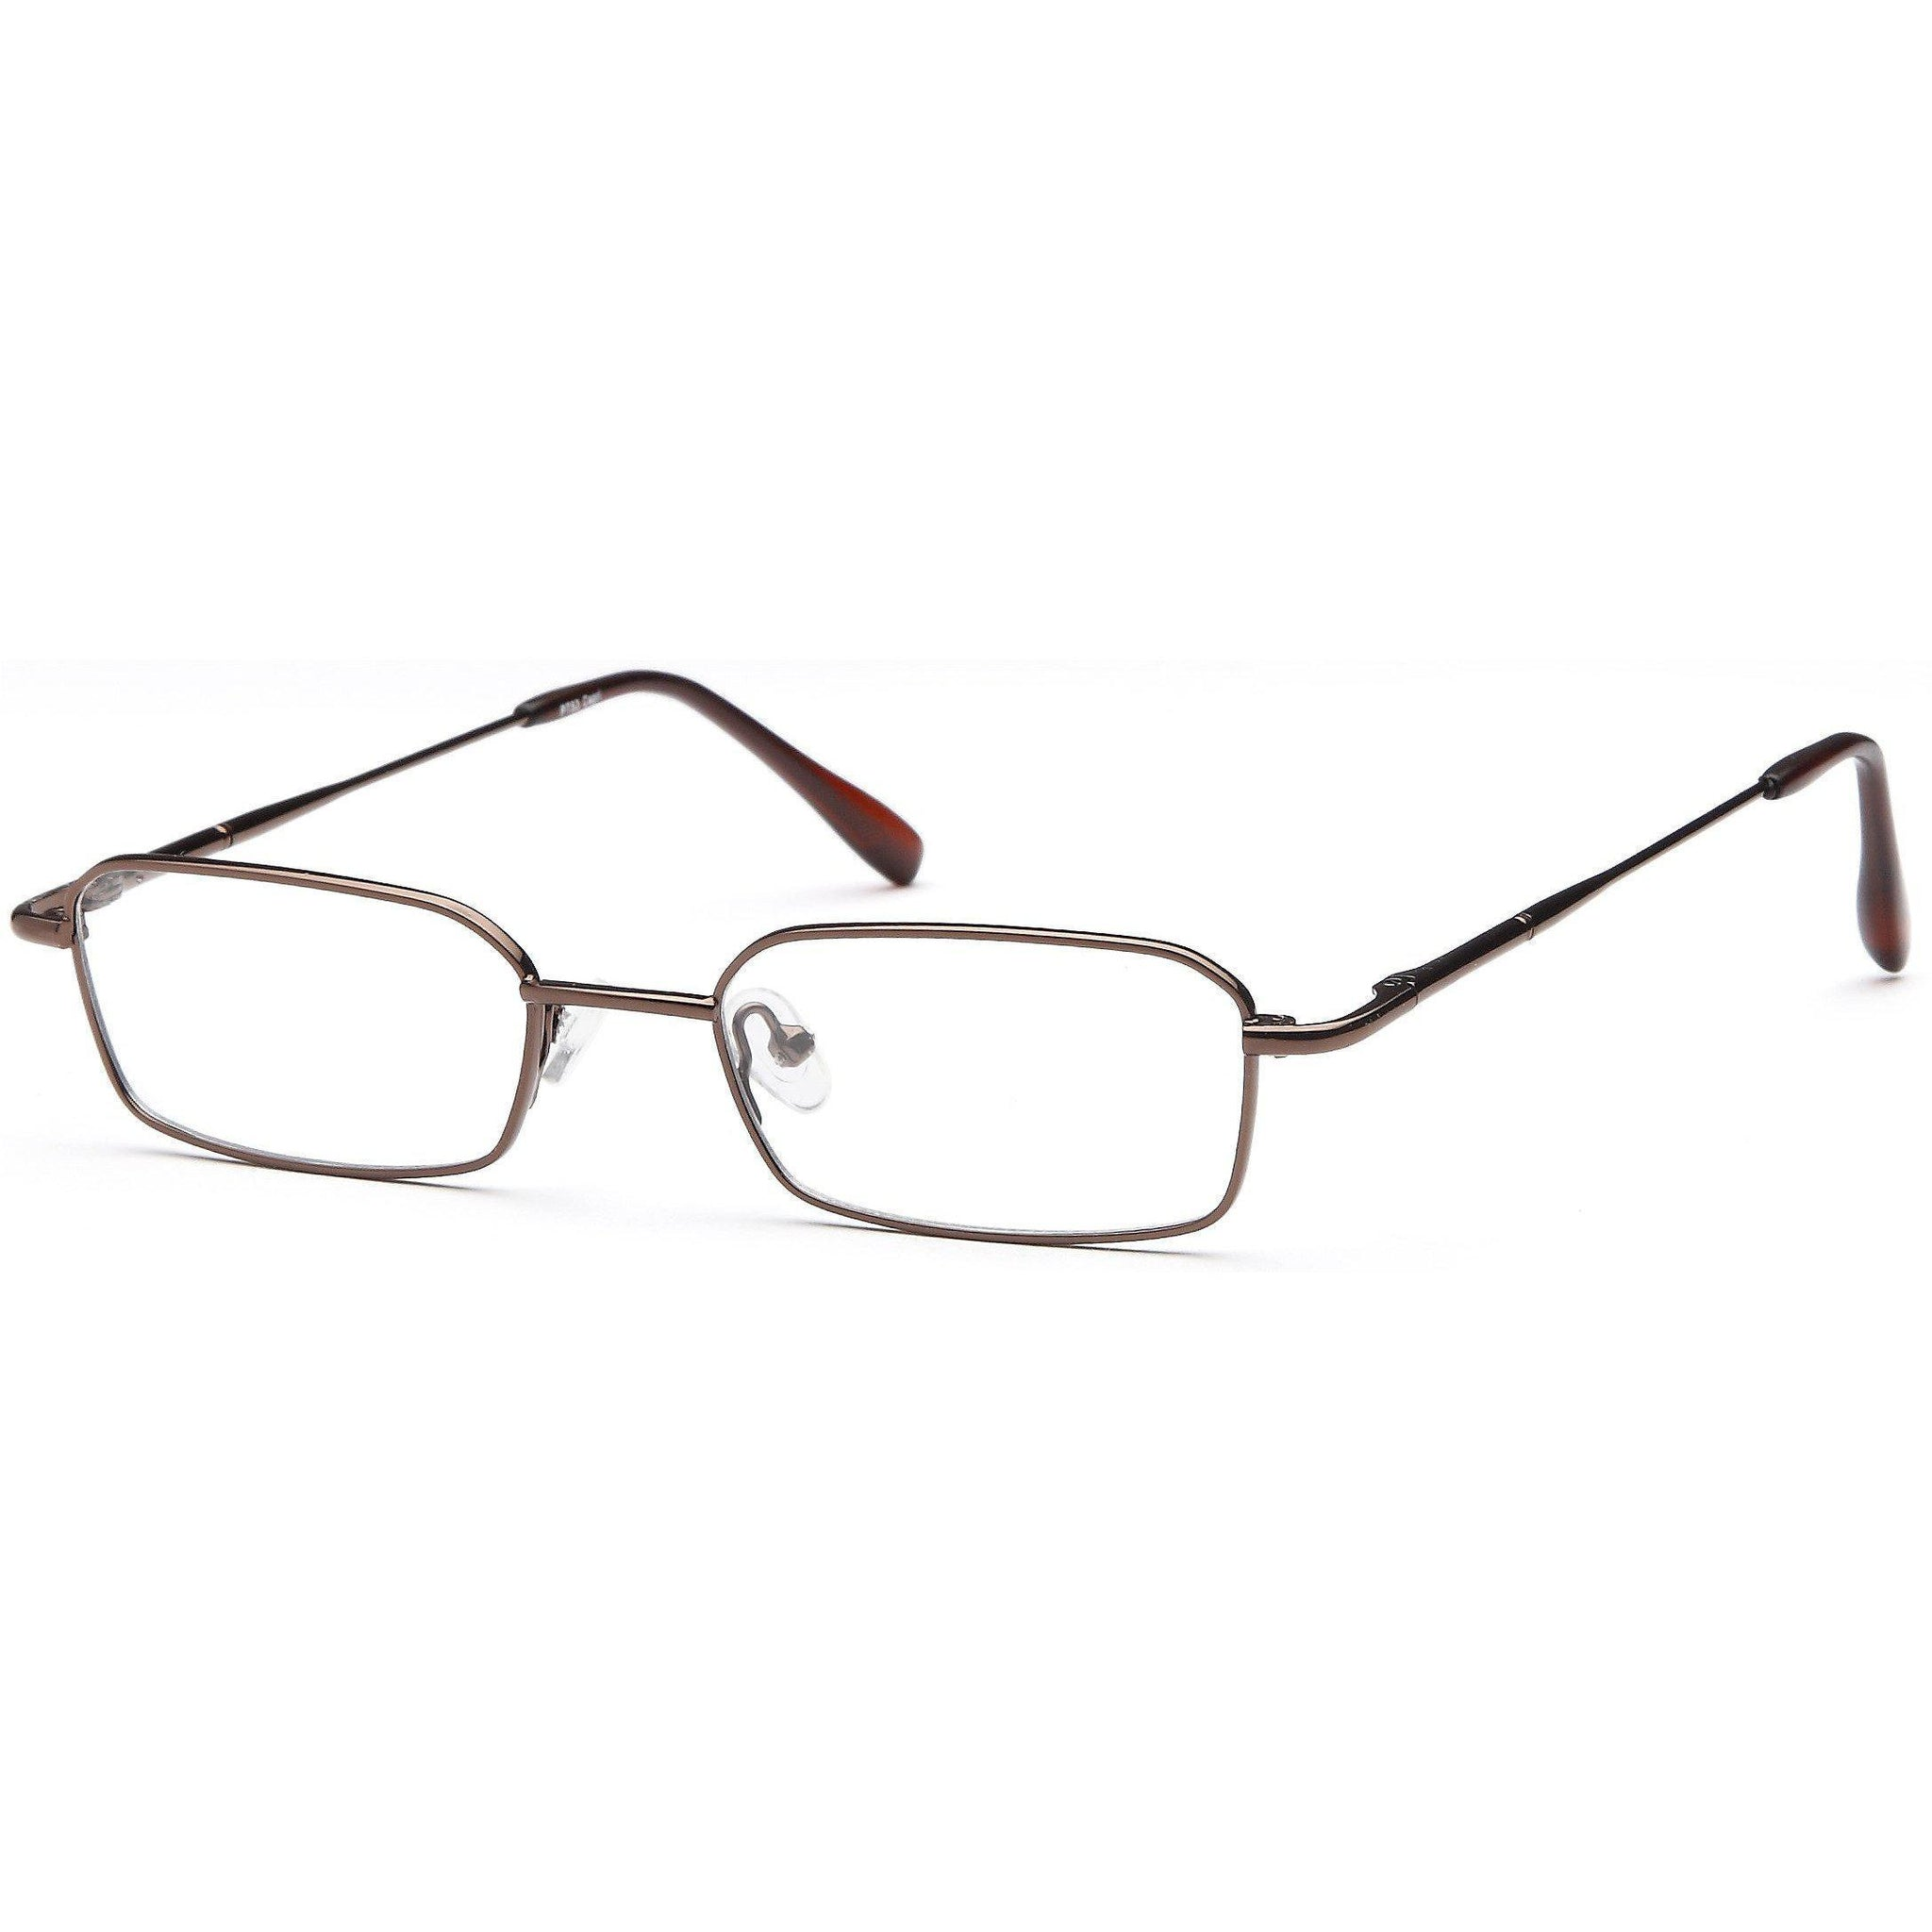 Appletree Prescription Glasses PT 53 Eyeglasses Frame